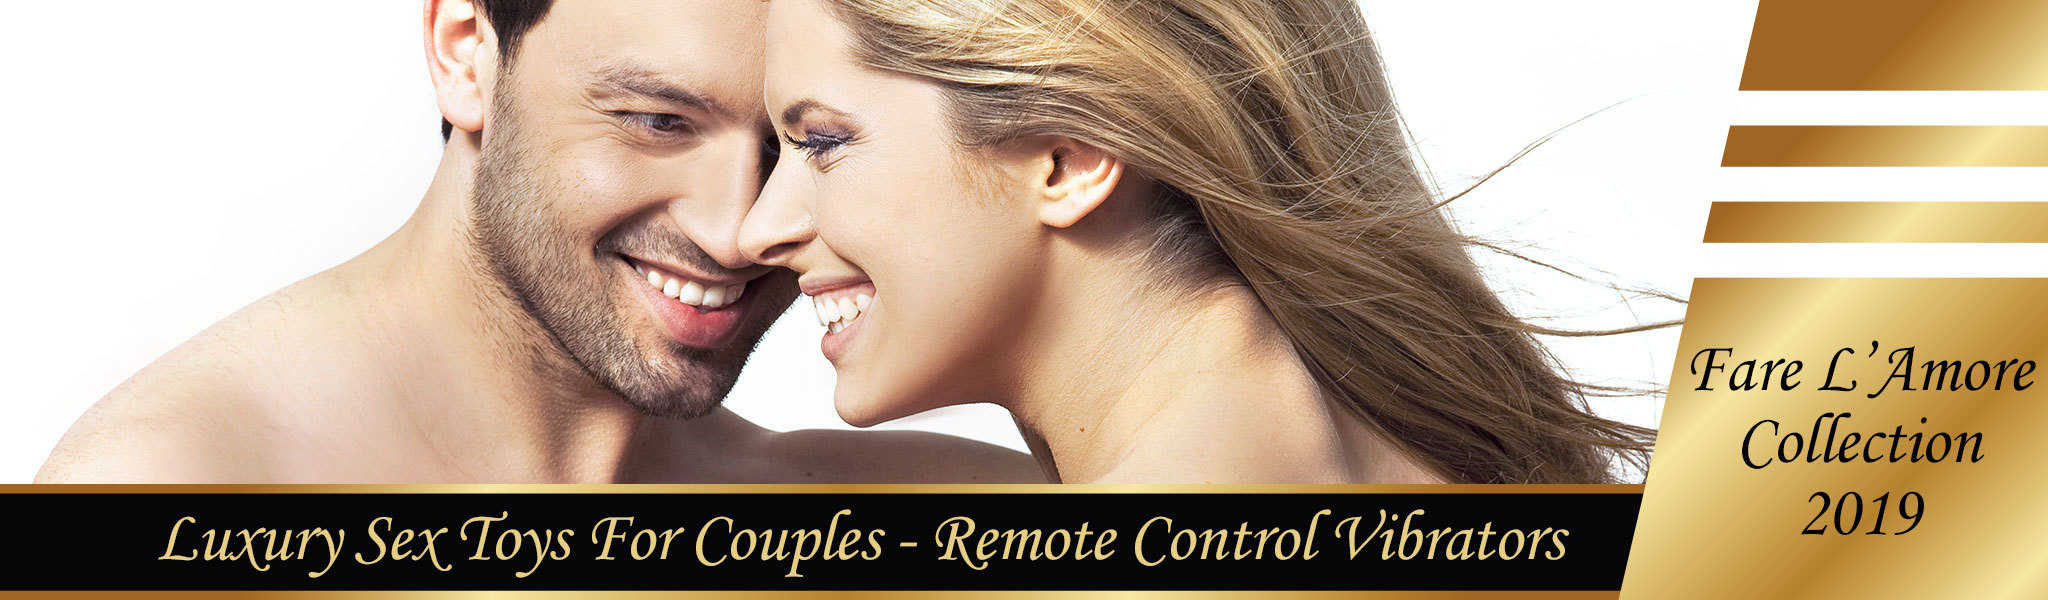 Remote Control Vibrators | Sex Toys For Women